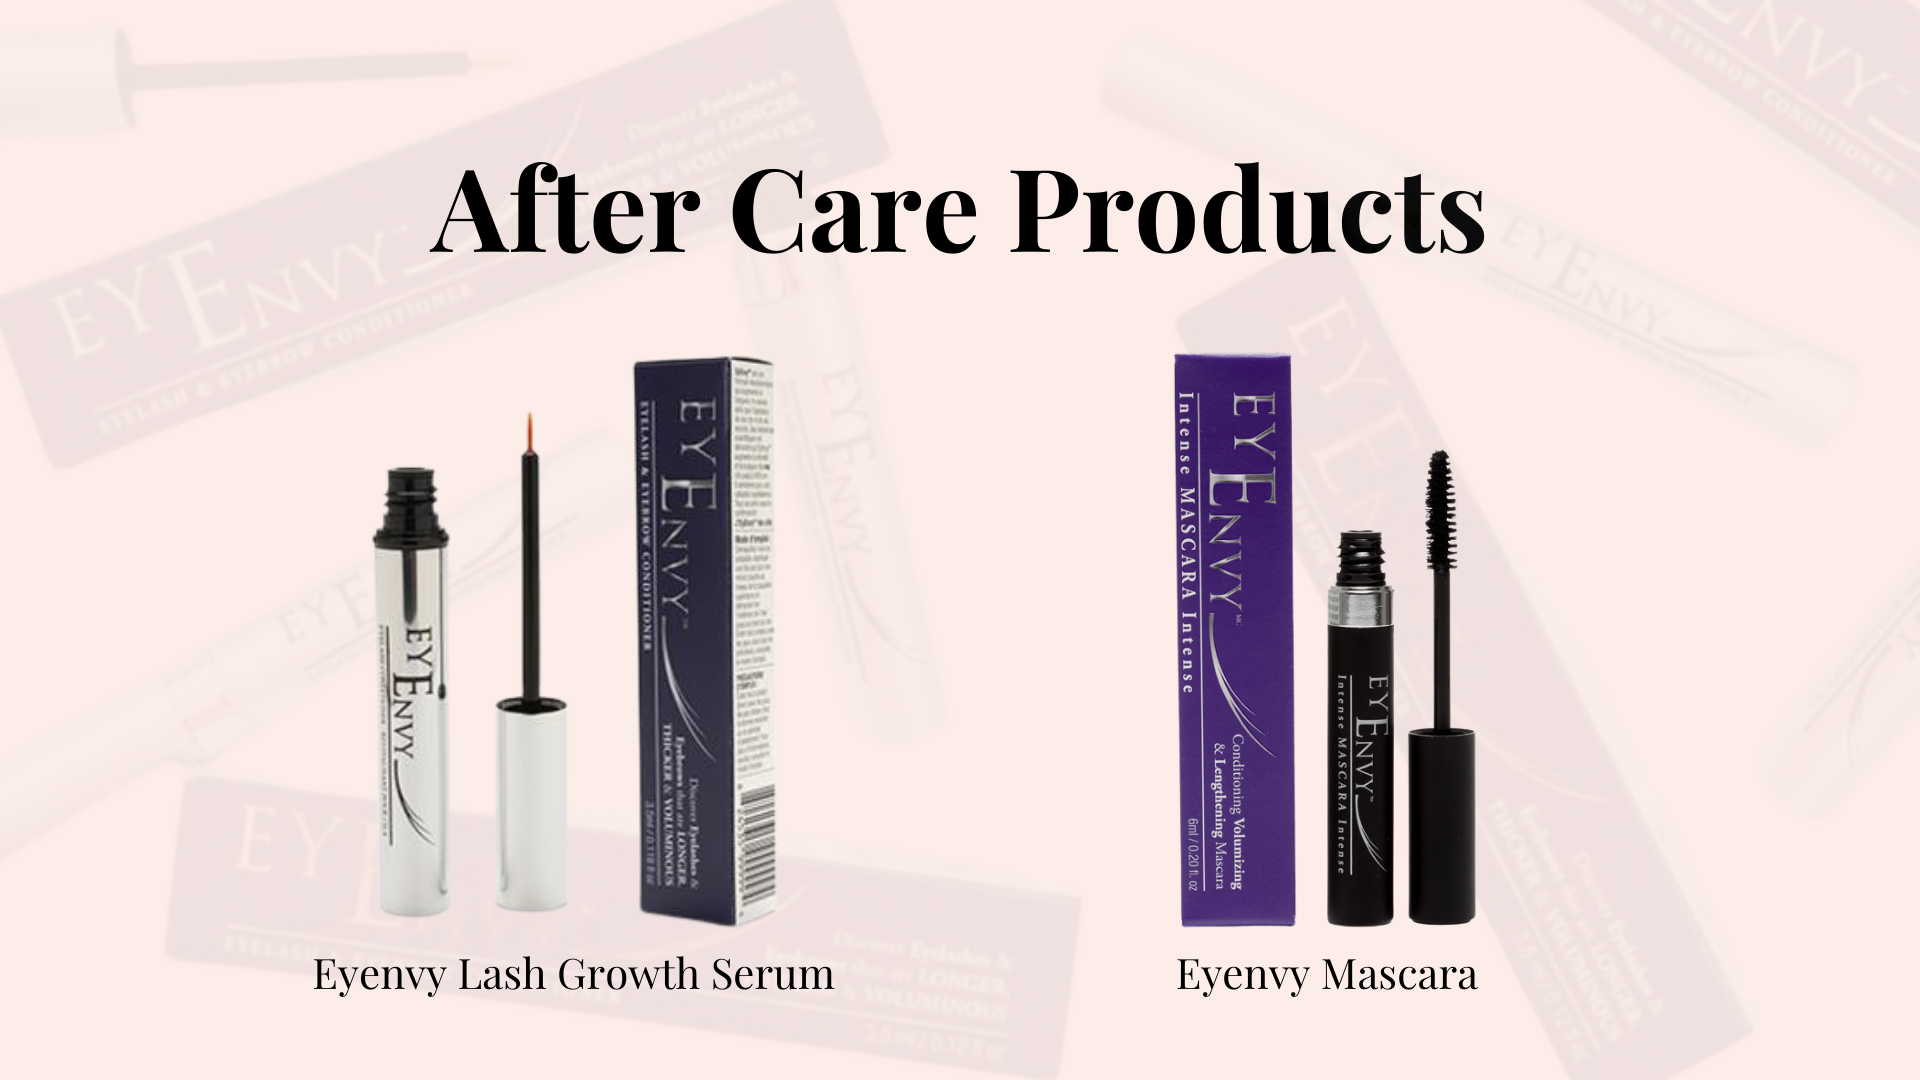 aftercare Eyenvy mascara, Eyenvy, Eyenvy lash growth serum